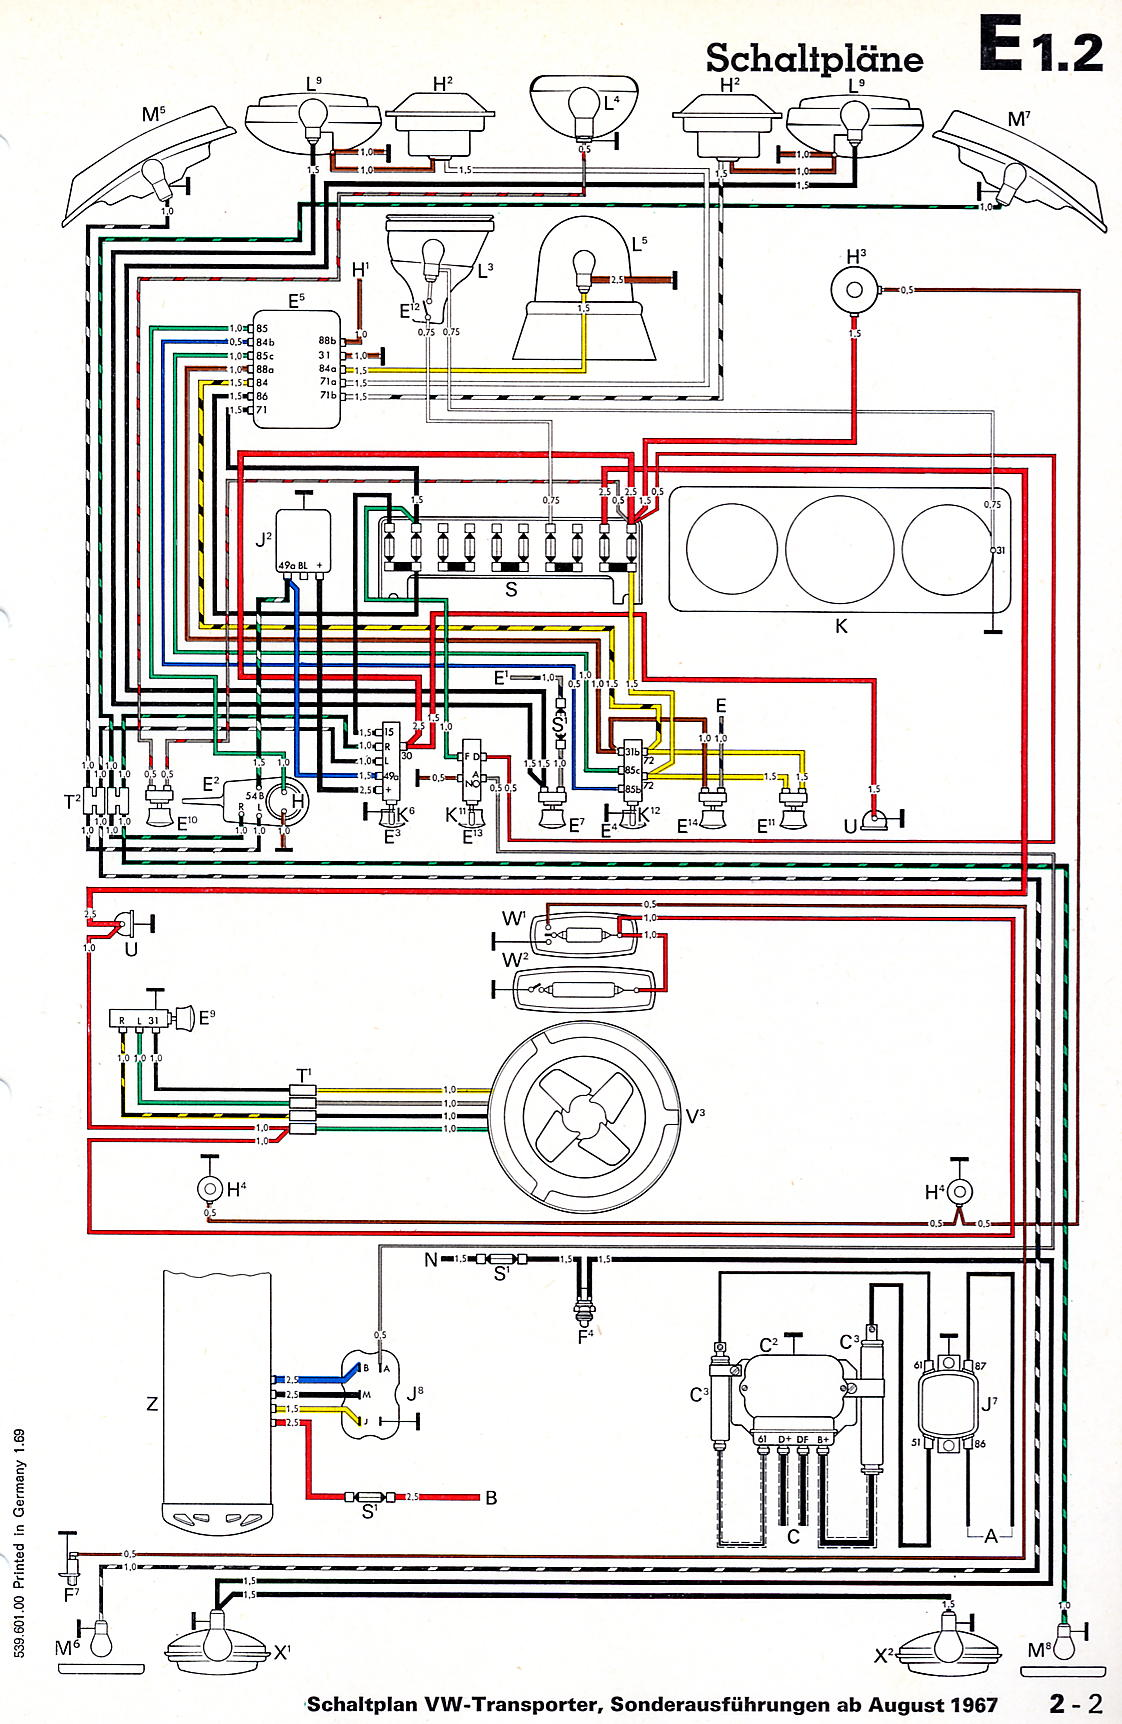 Vw Horn Button Wiring Diagram Explore Schematic Jeep Vintagebus Com Bus And Other Diagrams Rh Motorbike 2000